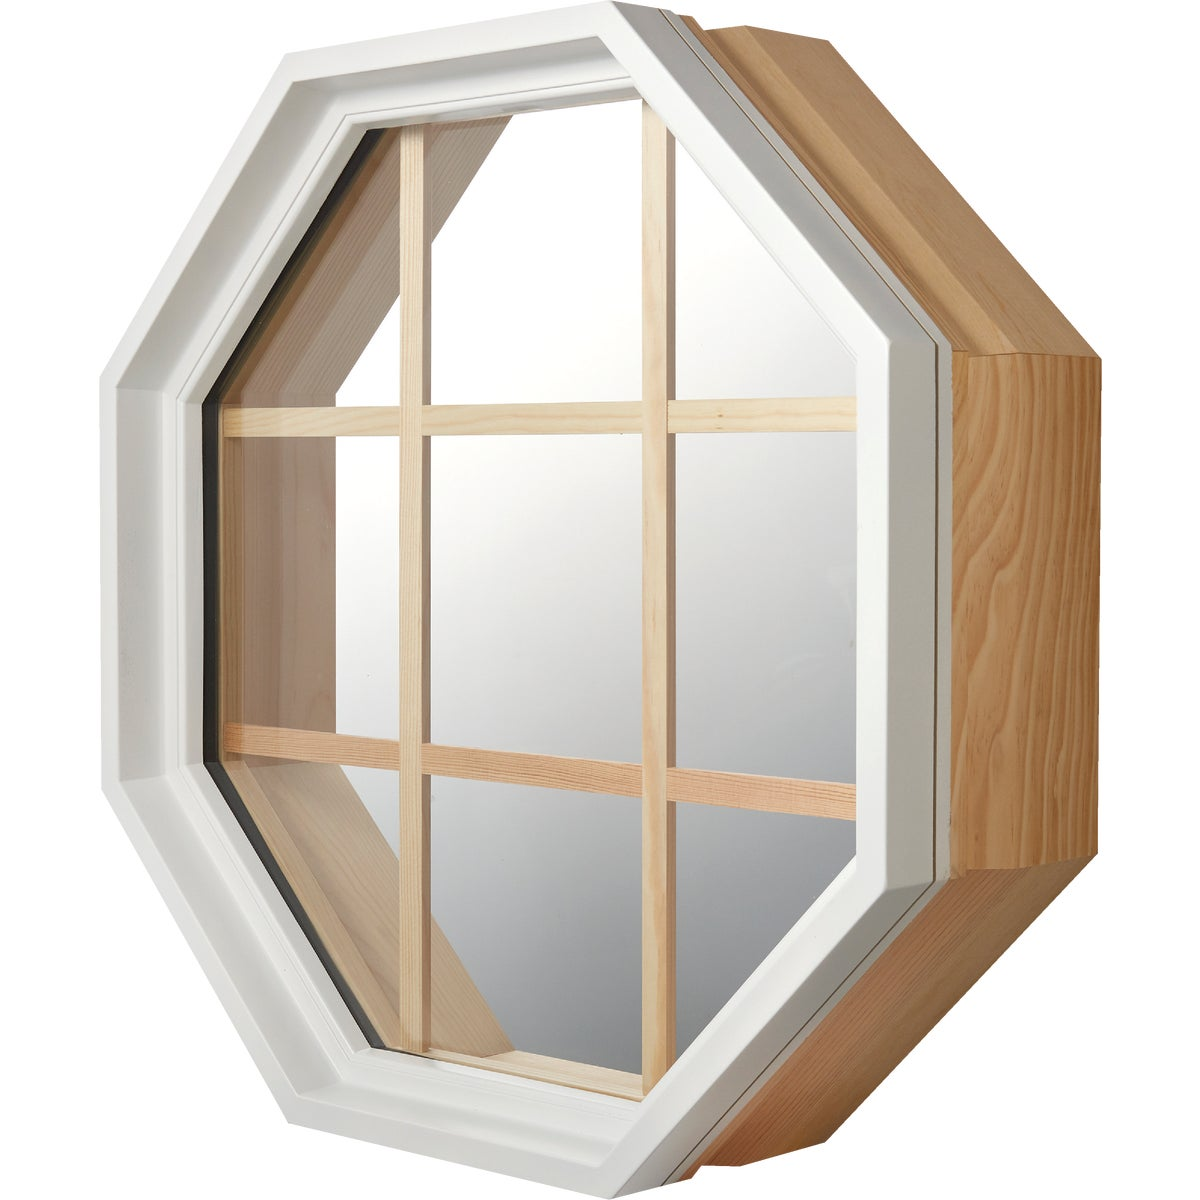 WHT VNYL OCTAGON WINDOW - 21111 by Century Speci Window